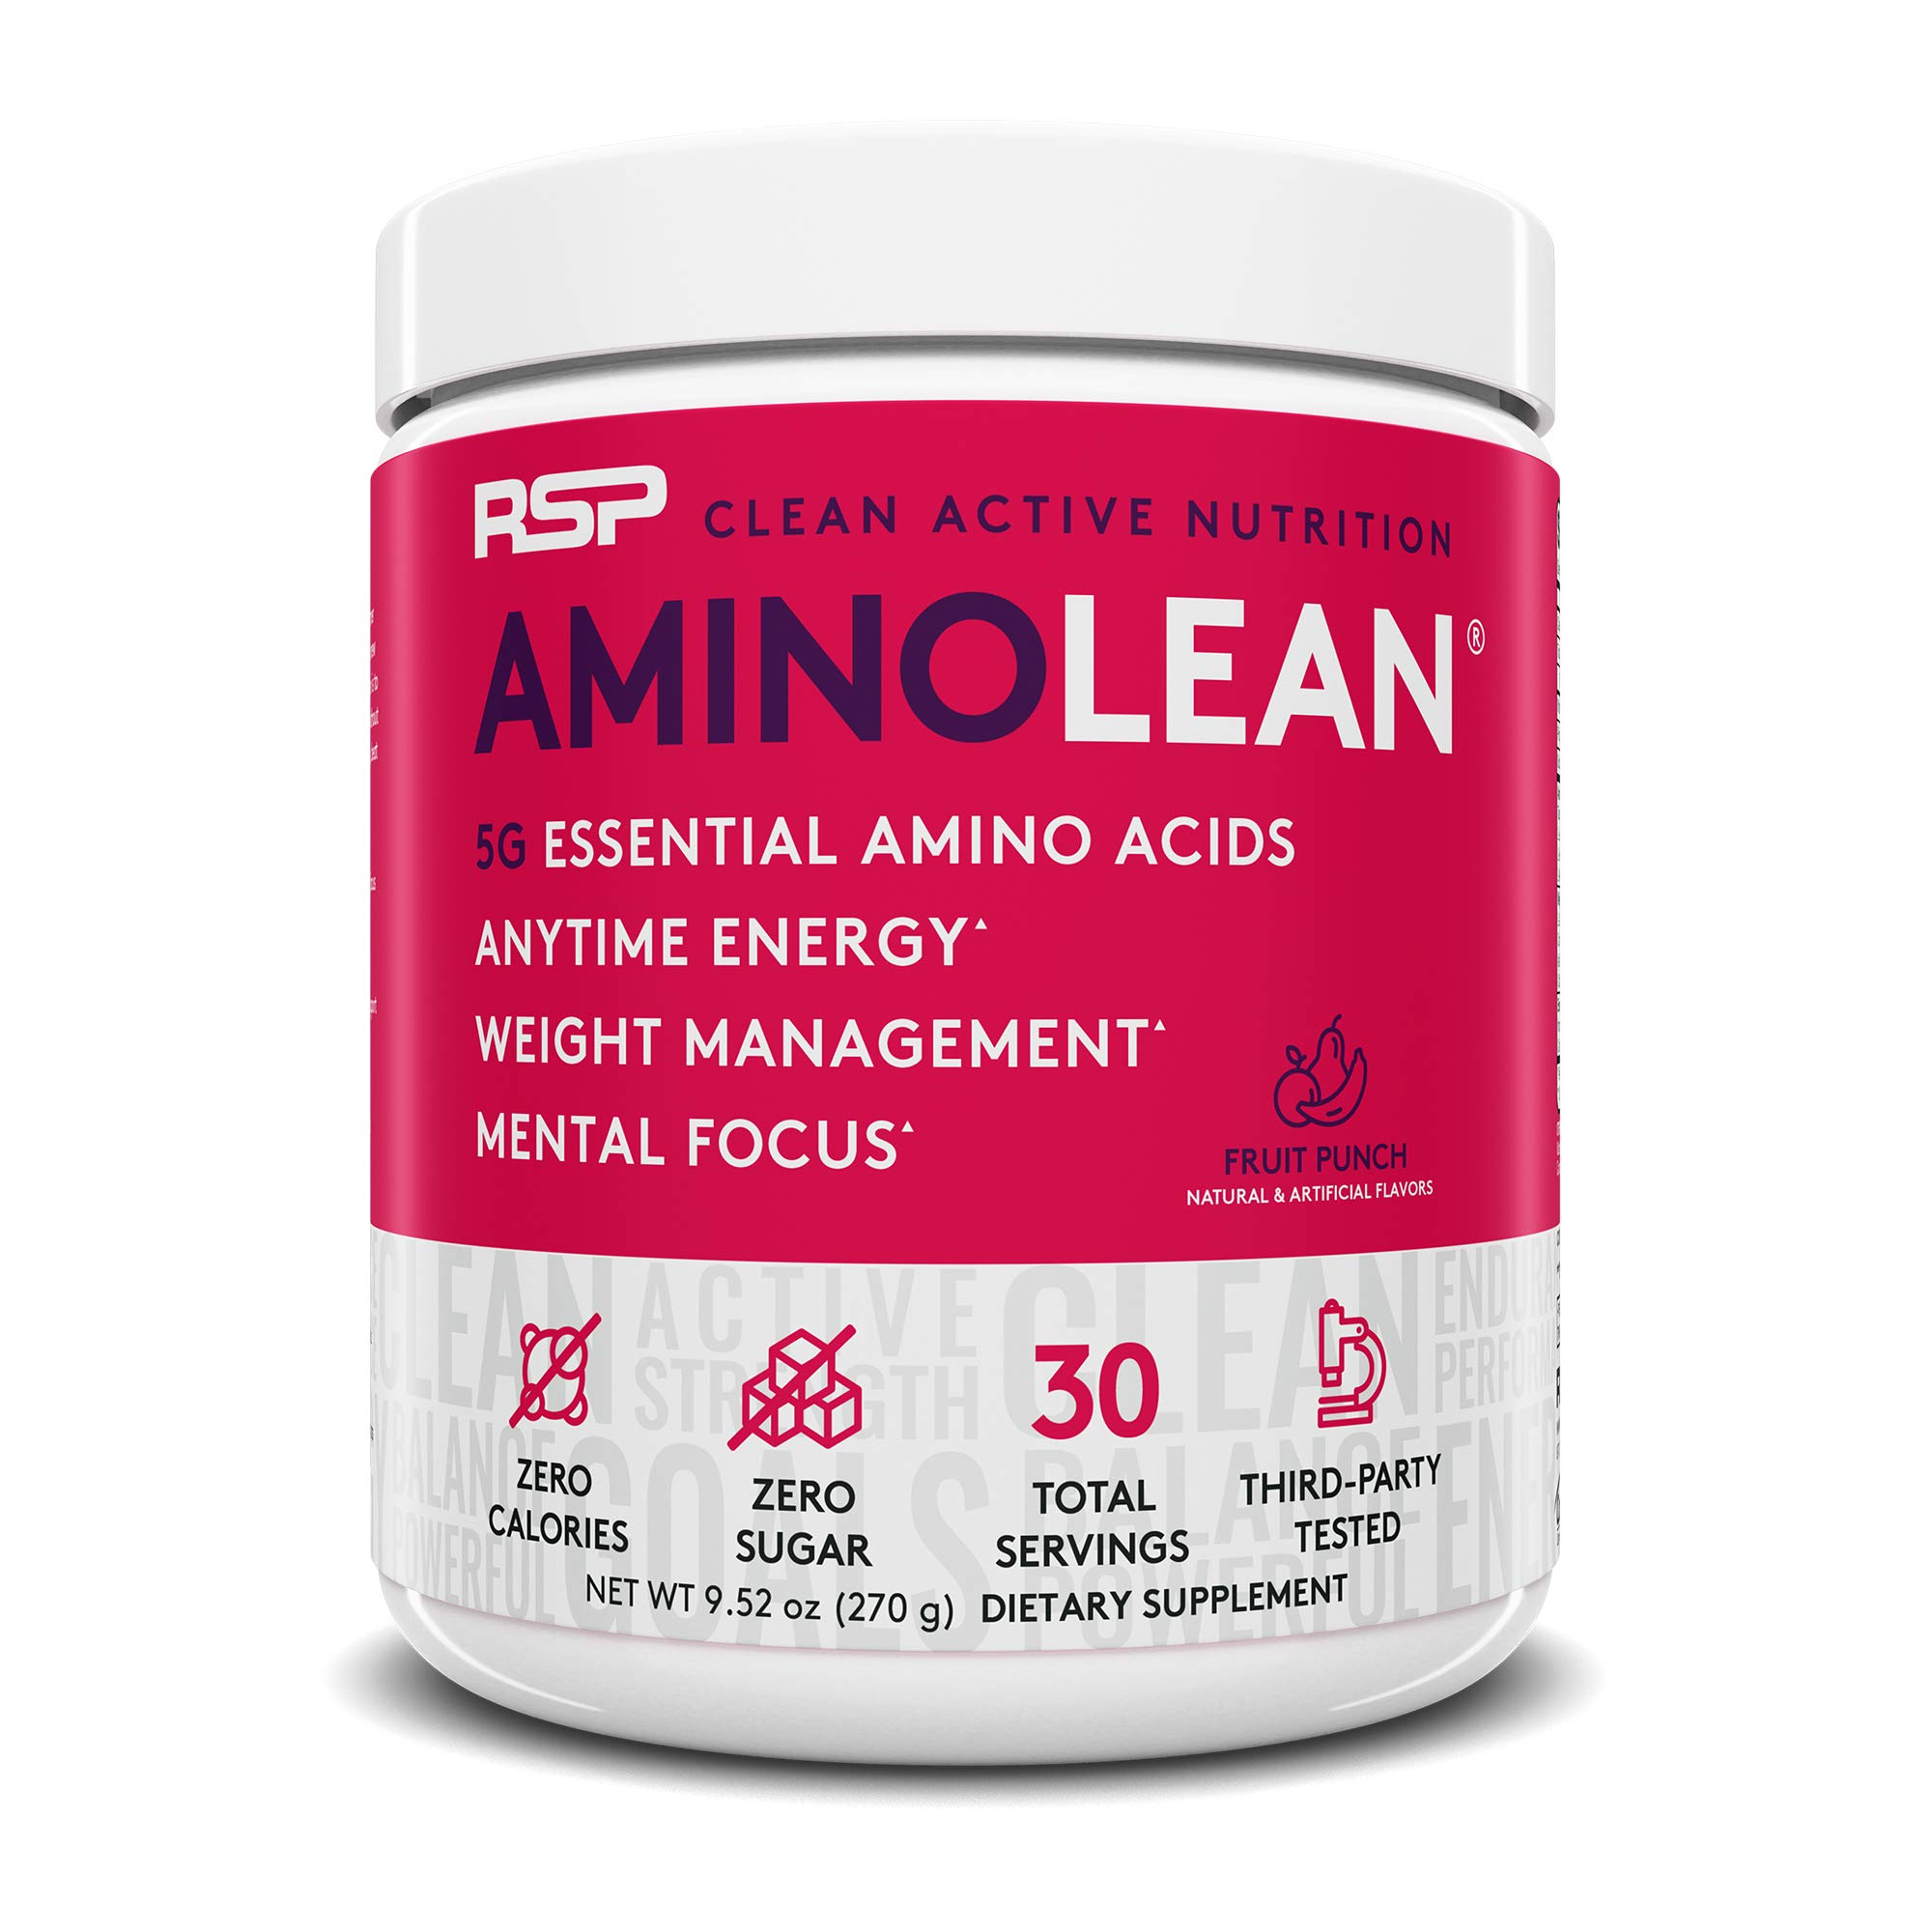 RSP AminoLean - All-in-One Pre Workout, Amino Energy, Weight Management Supplement with Amino Acids, Complete Preworkout Energy for Men & Women, Fruit Punch, 30 (Packaging May Vary) by RSP Nutrition